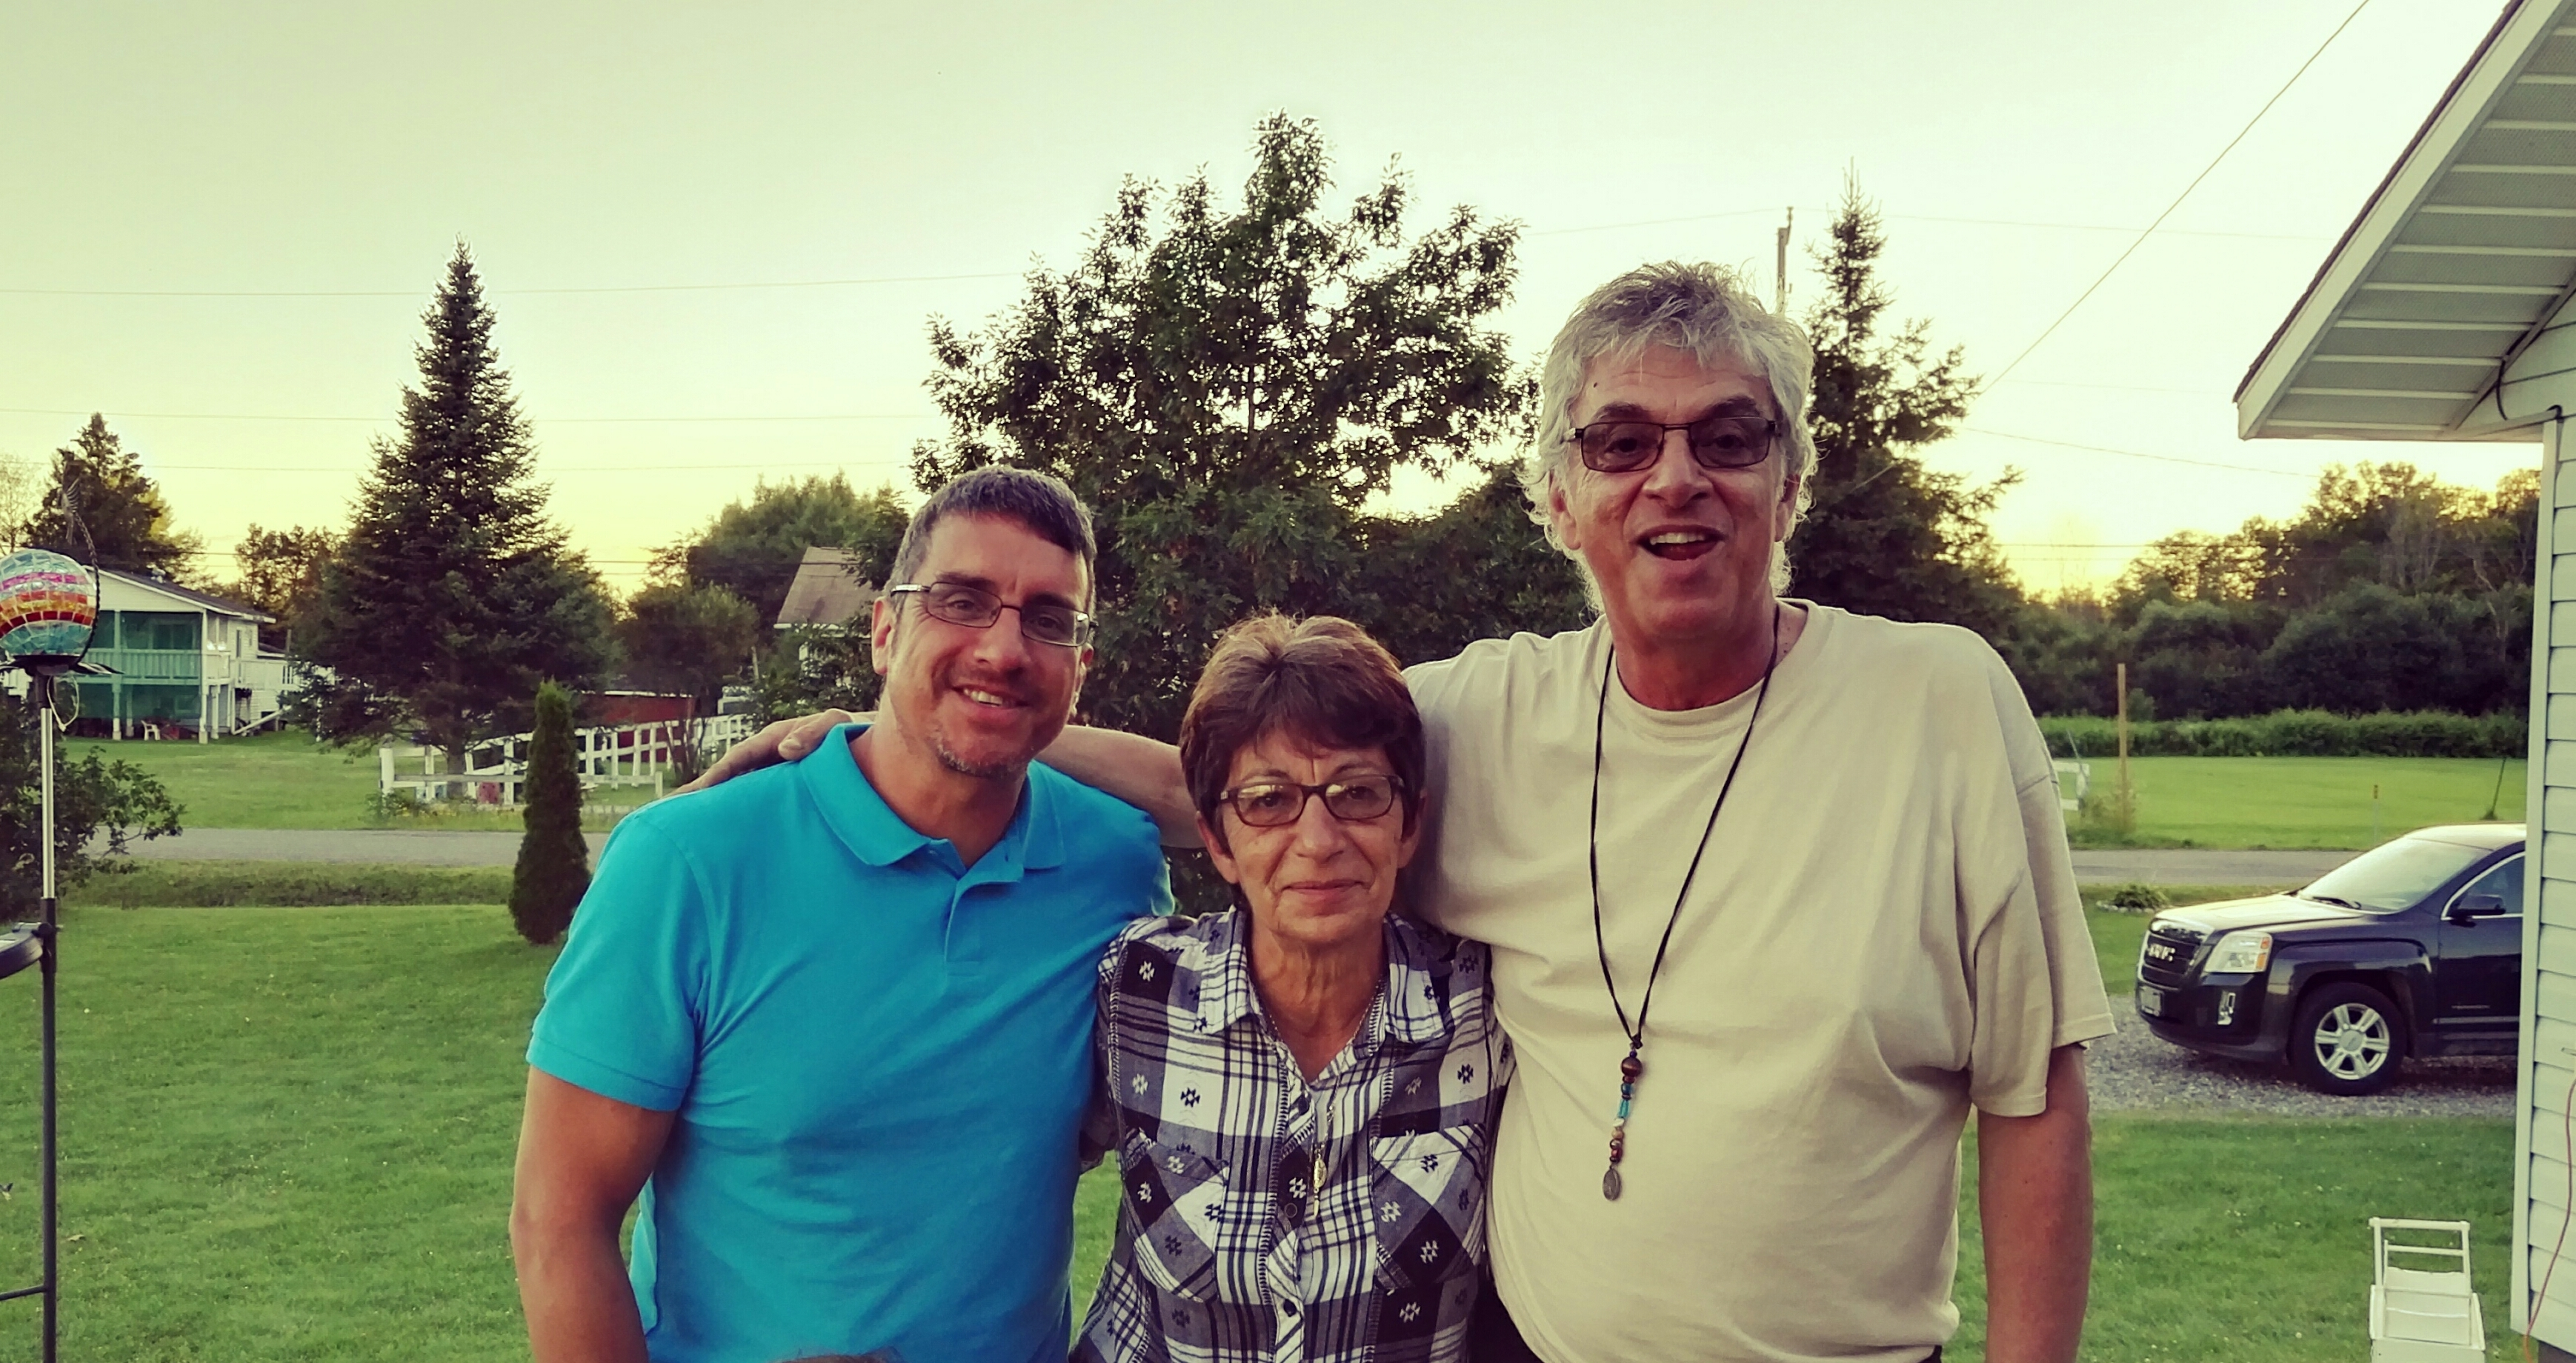 Daniel Black, far left, meets sister Kathy and brother Chris for the first time